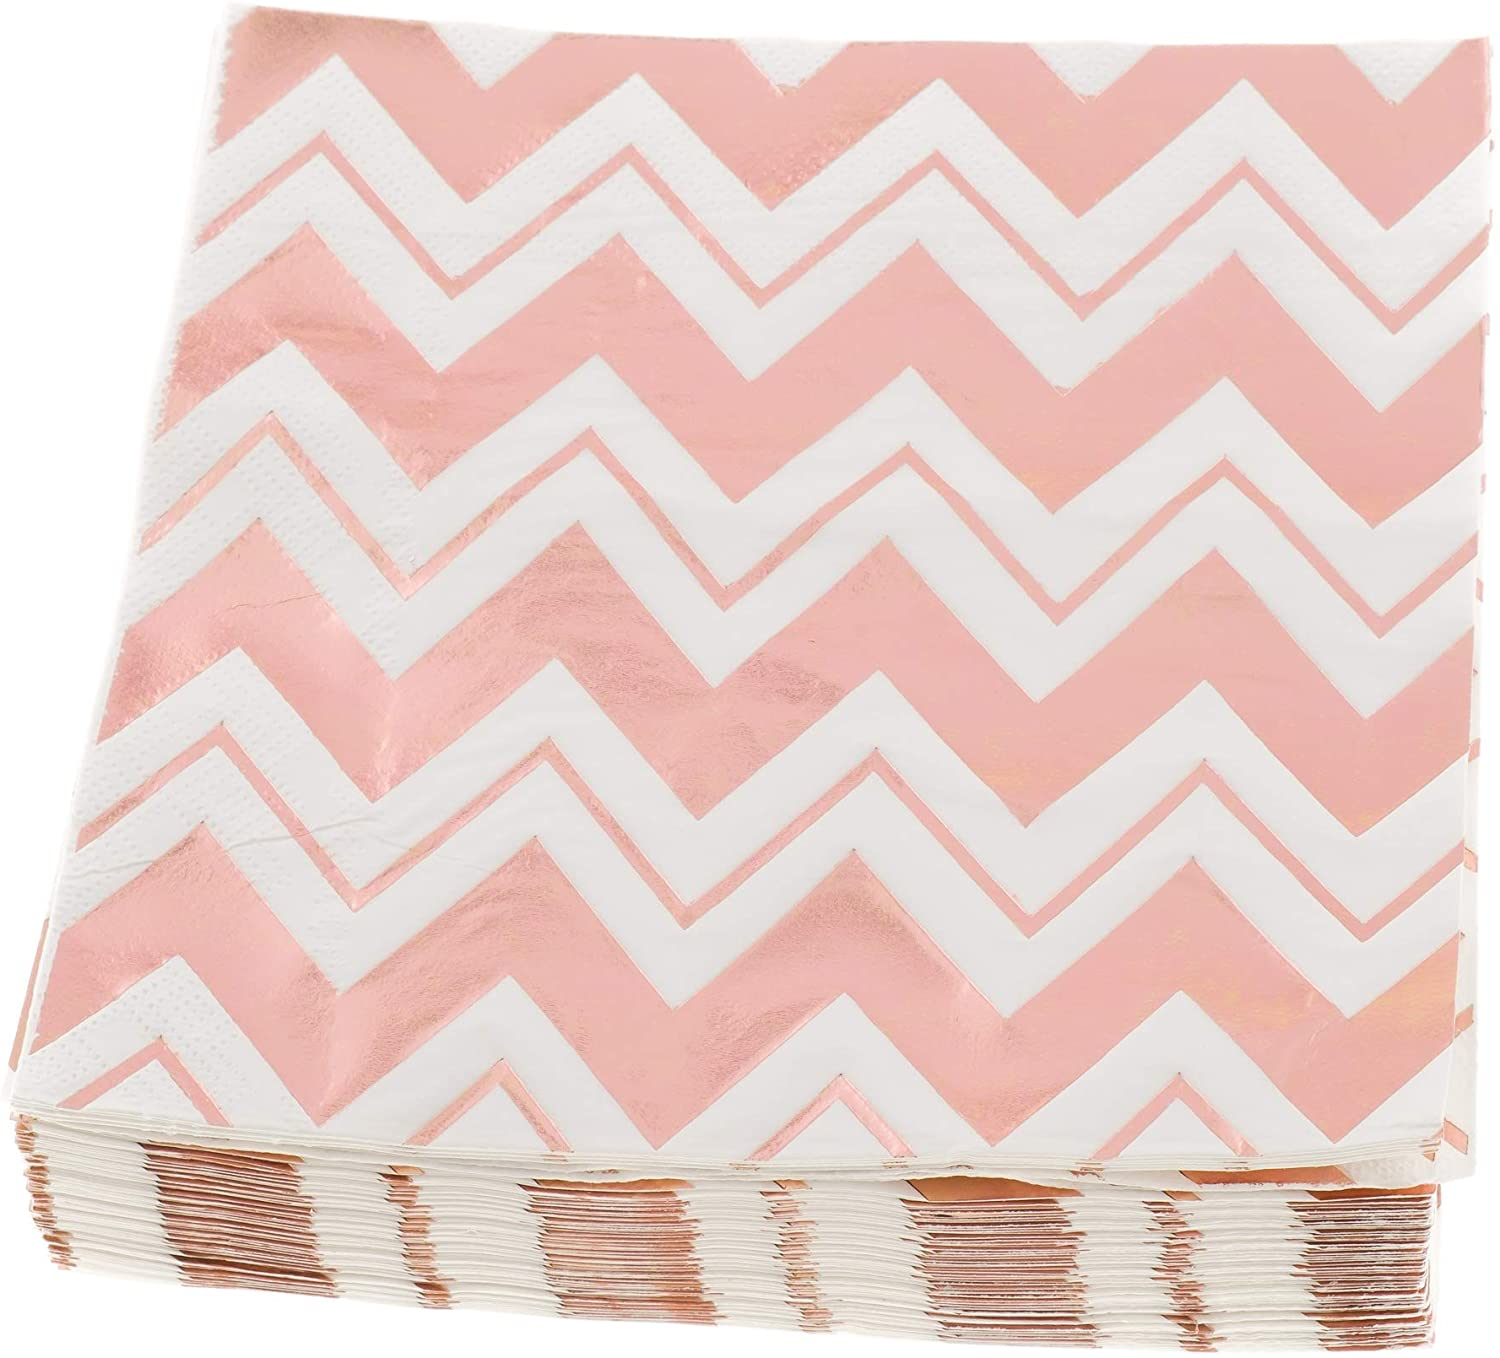 Ella Celebration 100 Pack Disposable Napkins with Rose Gold-Foil Chevron-Pattern, Tough and Durable 3-Ply, 6.5 x 6.5 inches Folded for Birthdays, Weddings (Rose Gold Chevron, 6.5